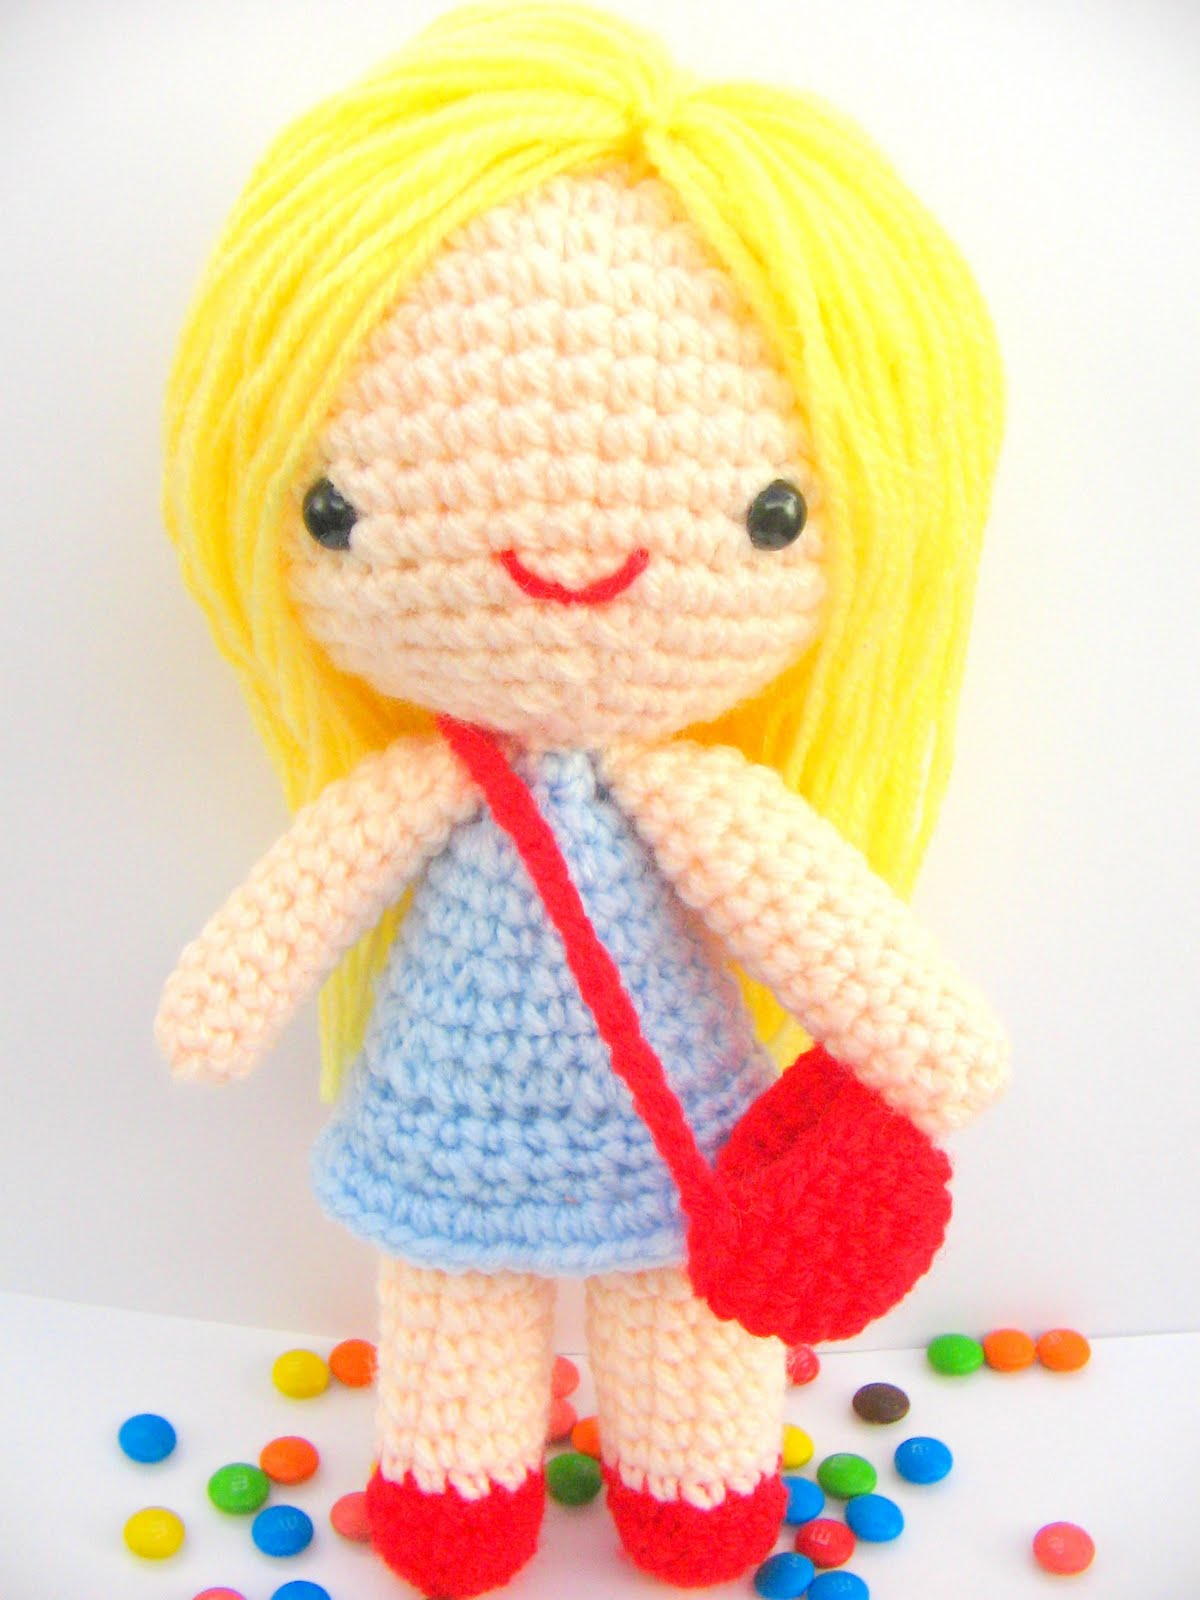 Crochet Doll Pattern Cute : 2000 Free Amigurumi Patterns: Free amigurumi pattern ...